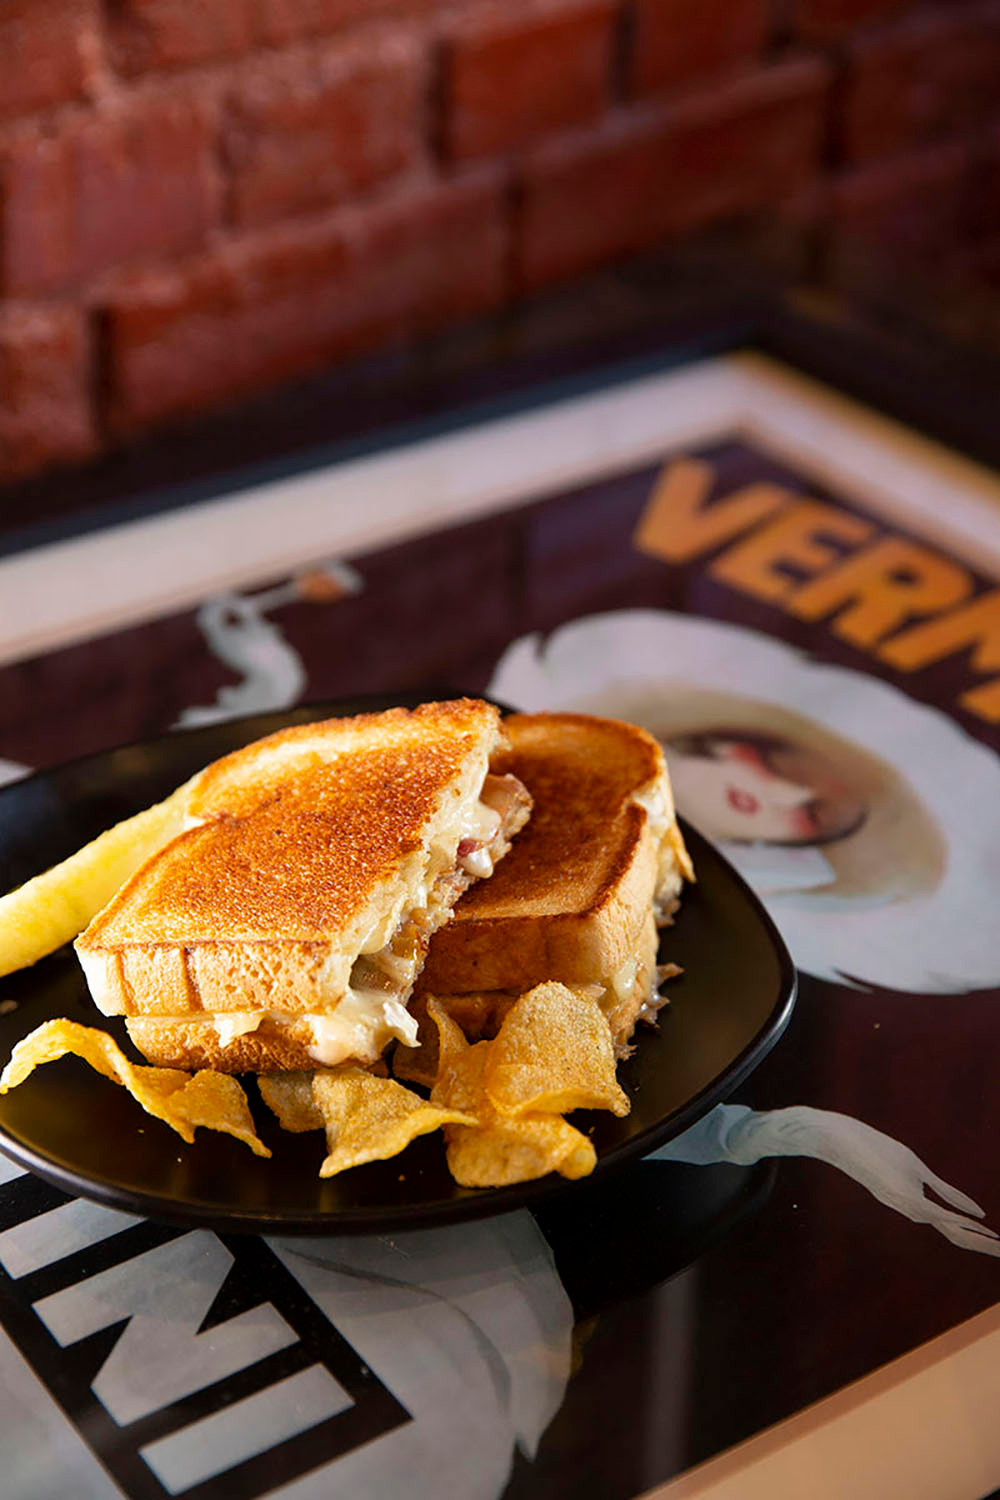 Golden grilled cheese with bacon sandwich cut in half on a plate with bar-b-que chips